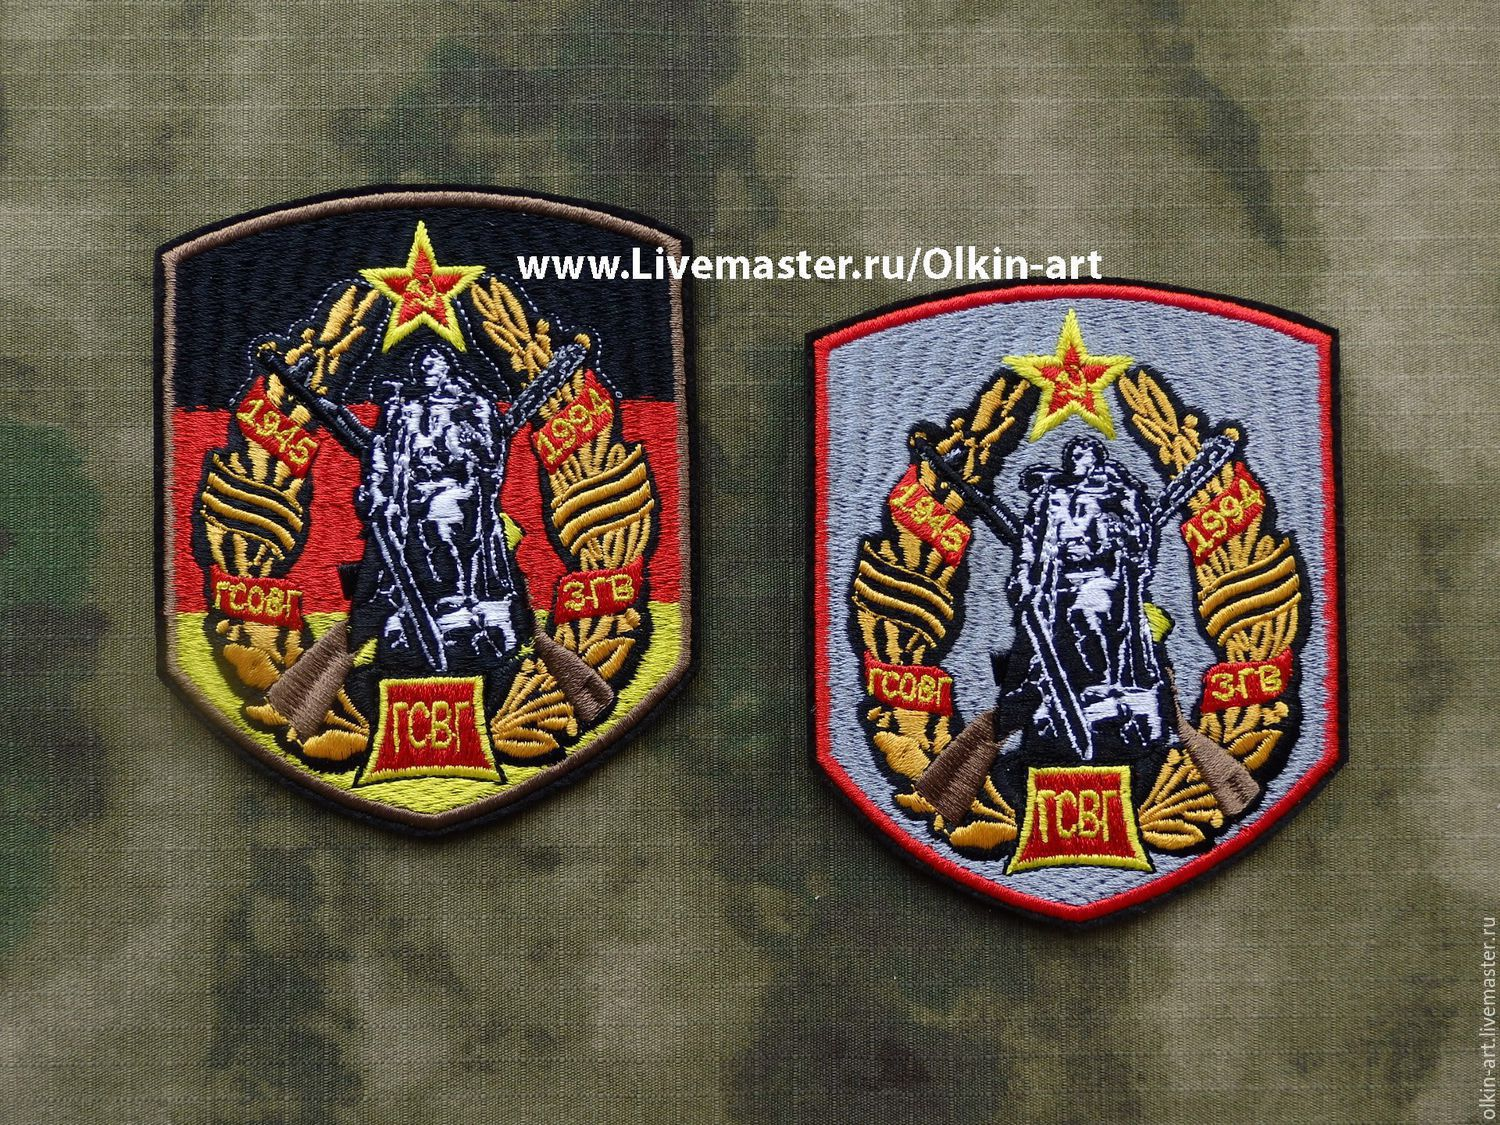 Stripe `gsvg` (Group of Soviet forces in Germany)` (flag / gray)  Machine embroidery. Beloretskiy stripe. Patch. Chevron. Patch. Embroidery. Chevrons. Patches. Stripe. To purchase a patch.